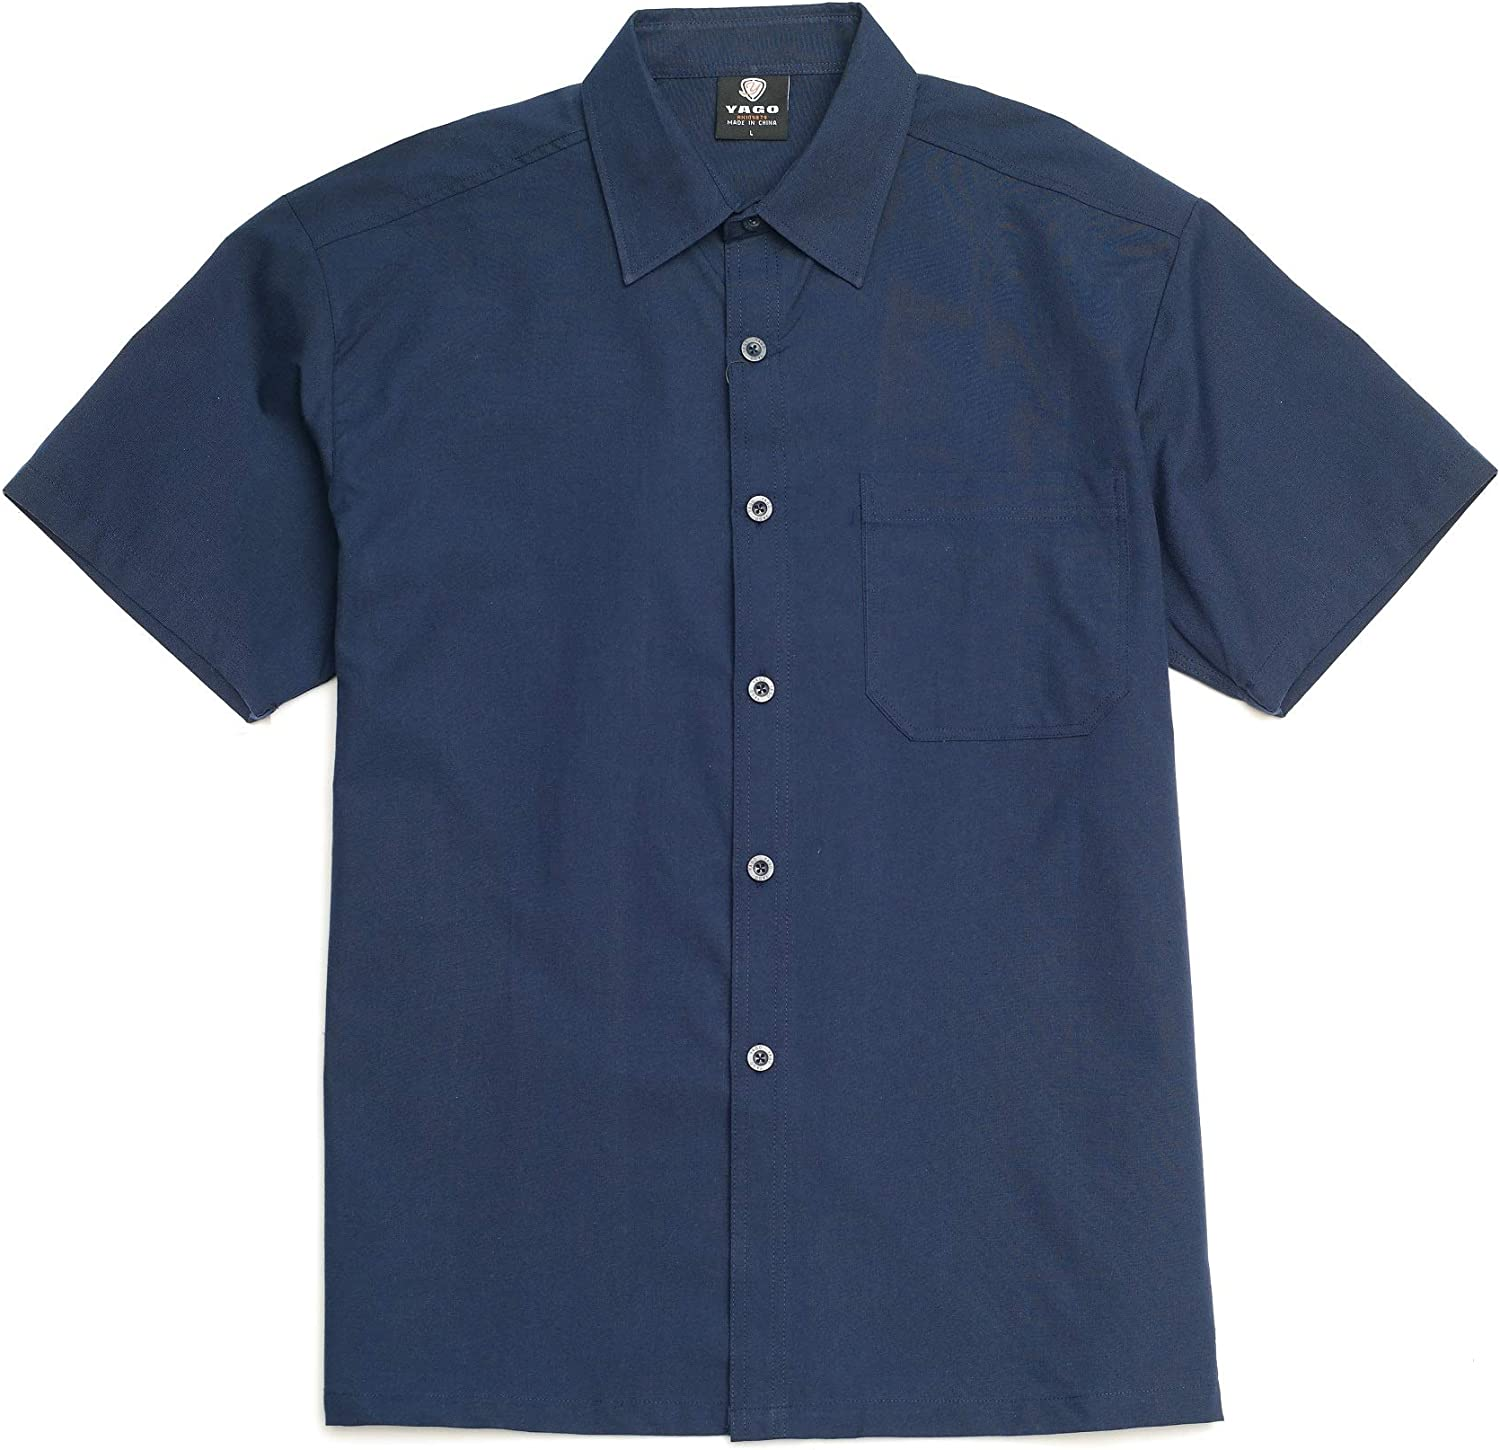 YAGO Men's Casual Checkered Relaxed Fit Button Up Short Sleeve Work Shirt